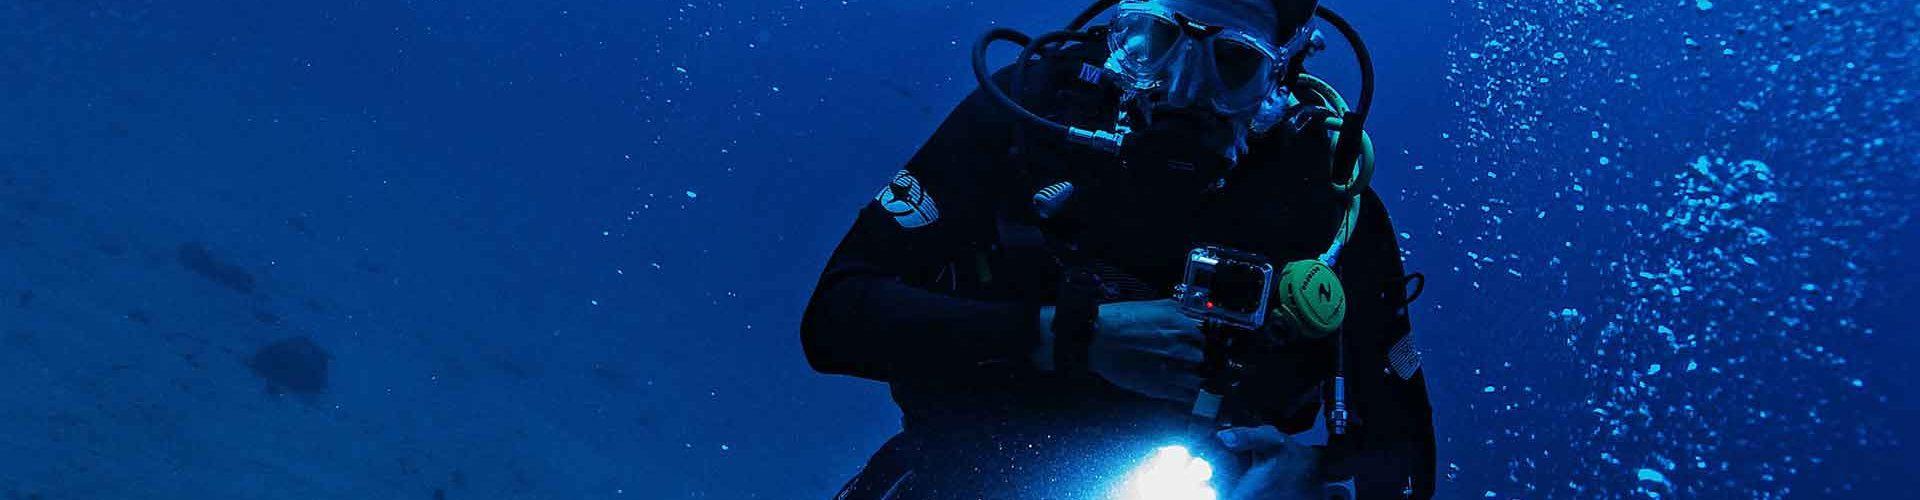 Night-Diver-PADI-Underwater-Barcelona